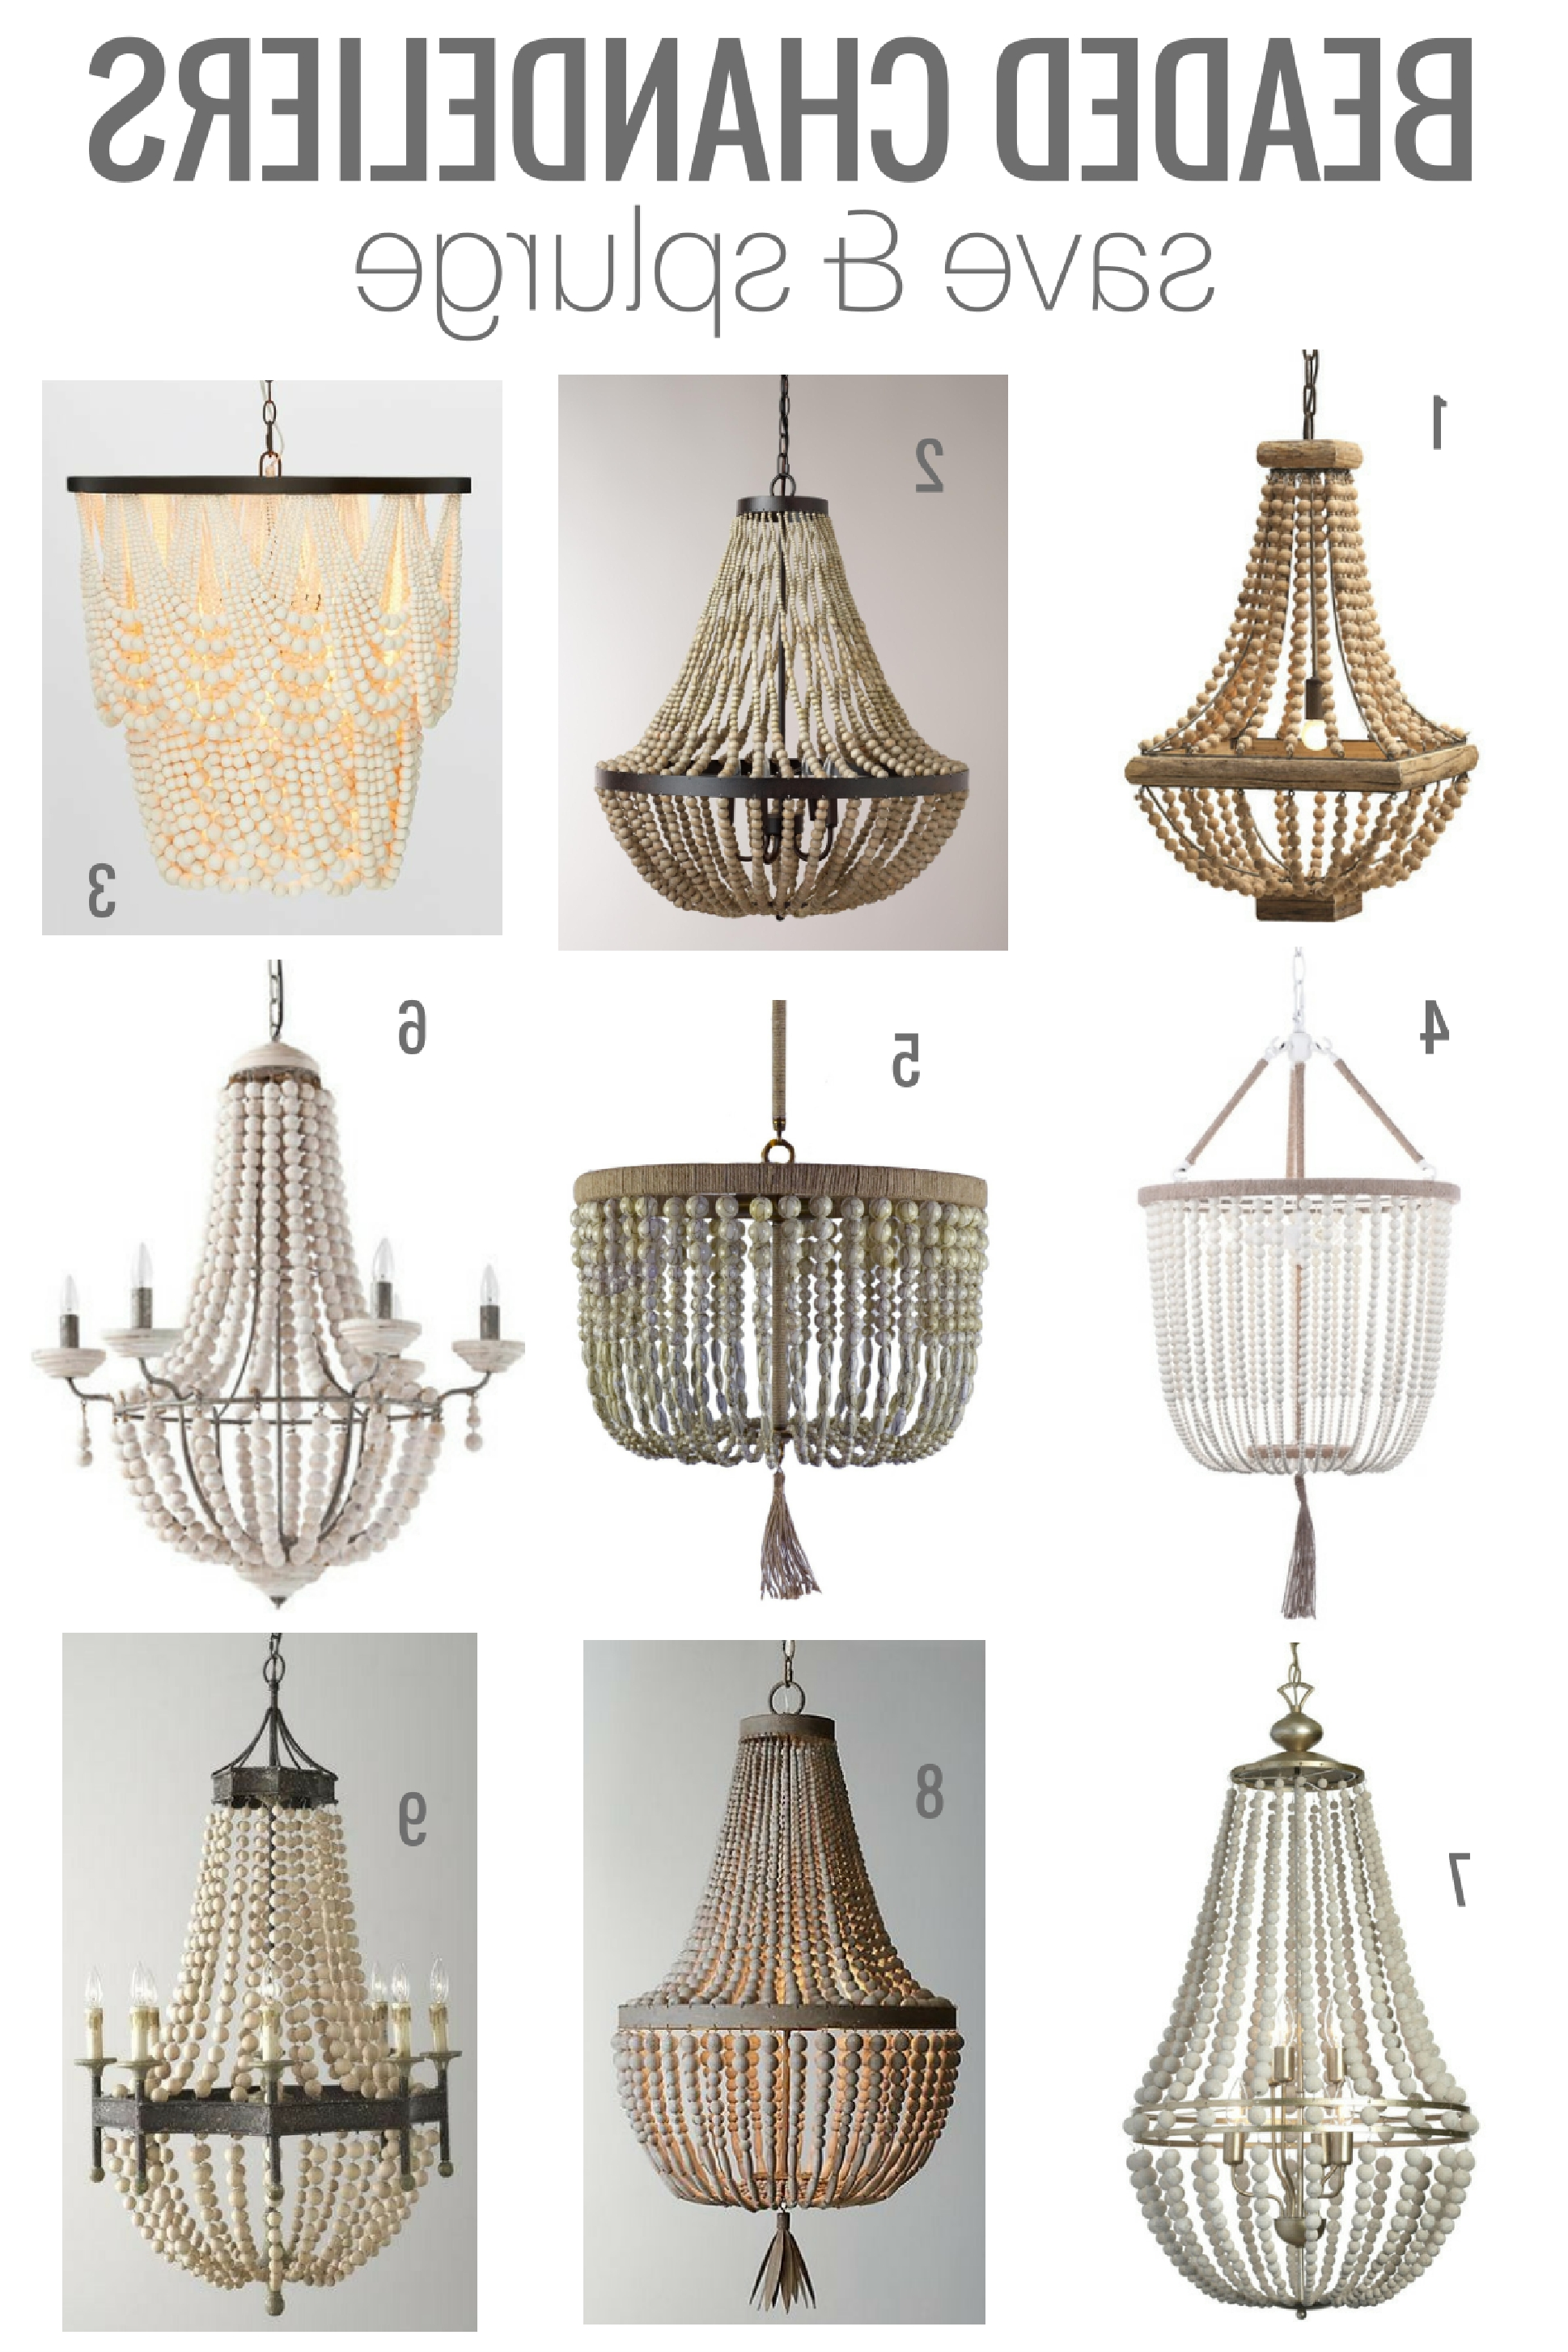 Beaded Chandeliers & Invaluable Lighting Lessons (View 4 of 15)